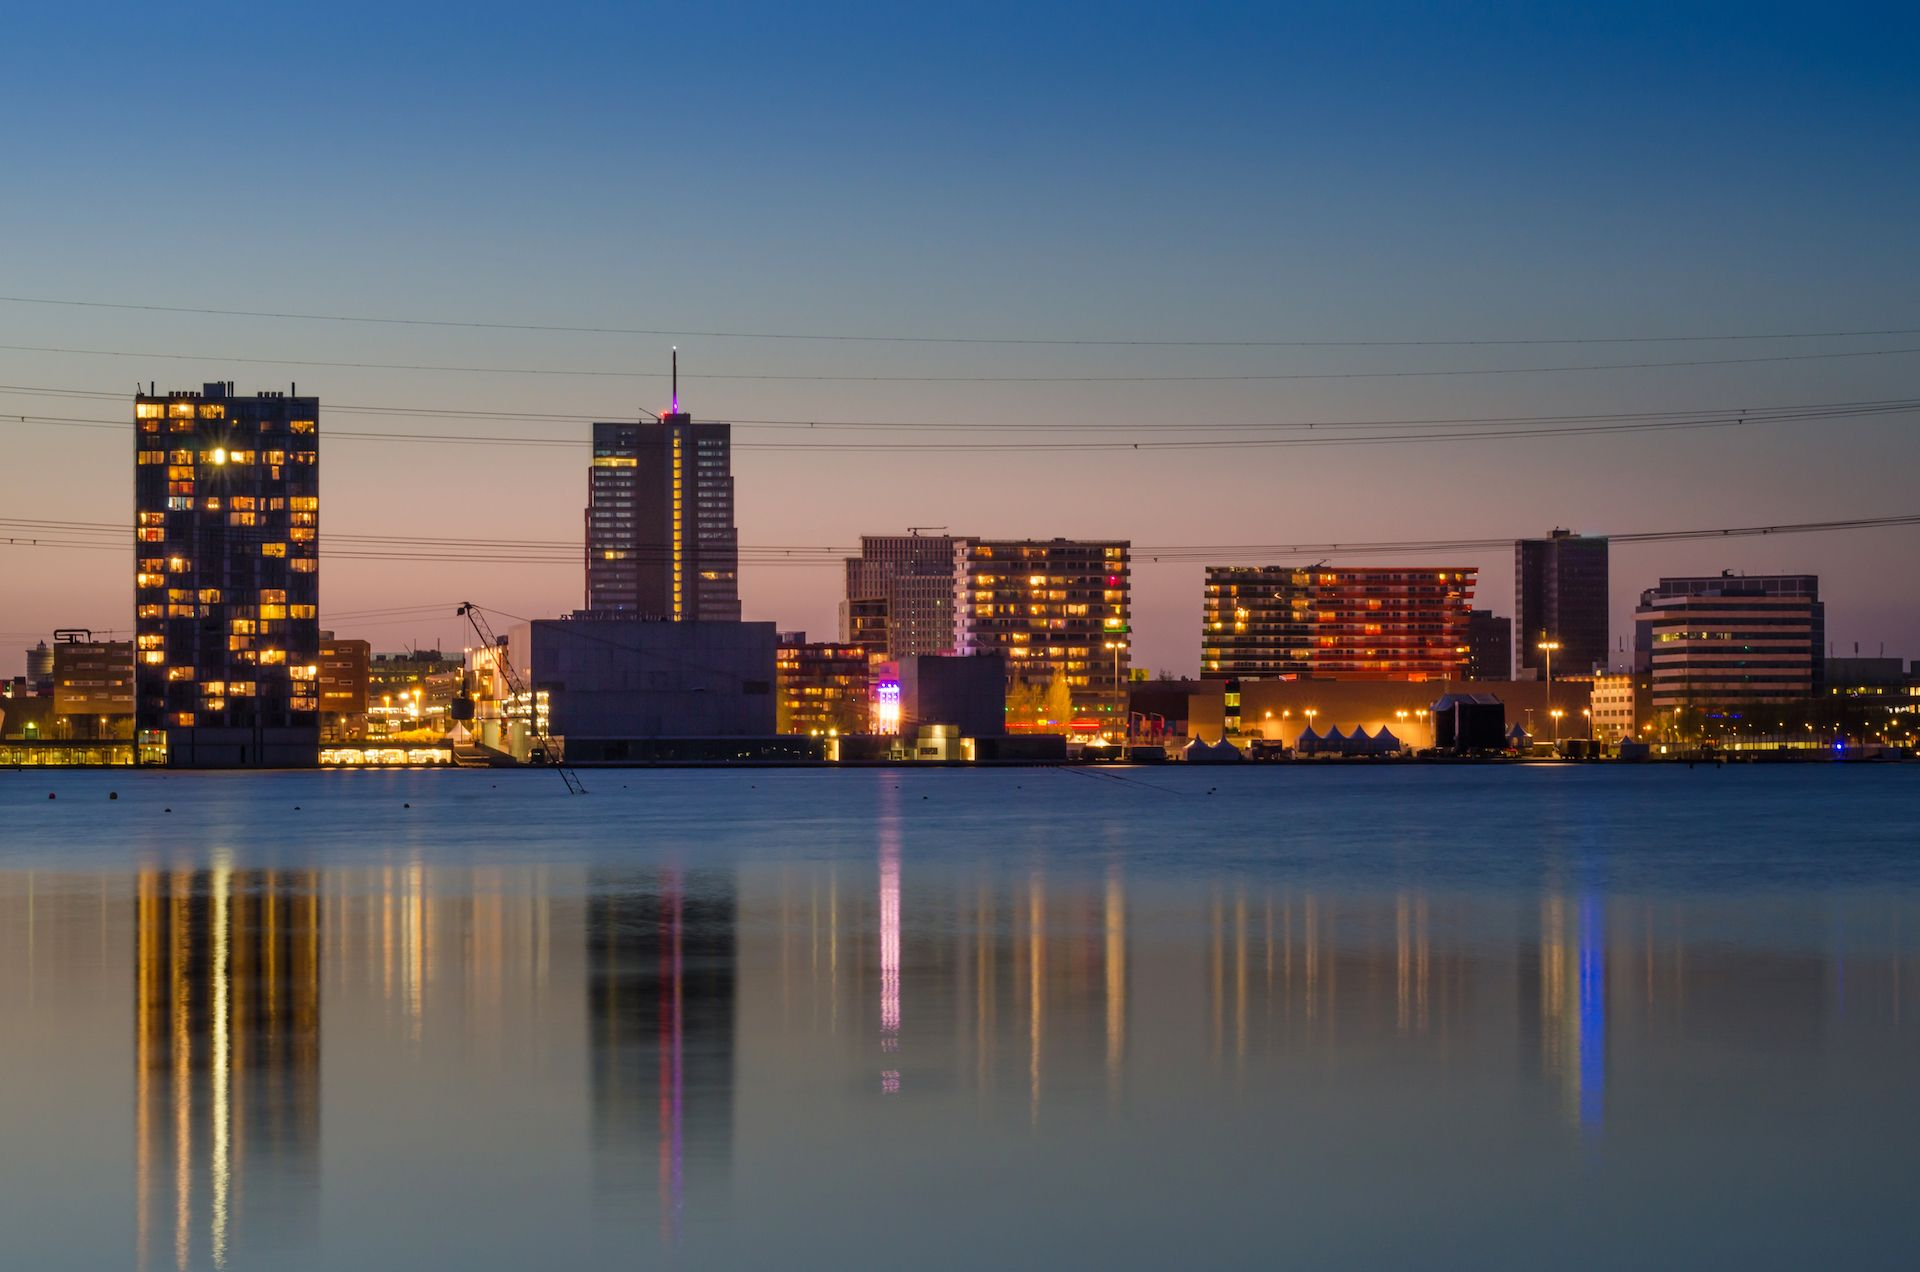 skyline-almere-night-9115d1bd Vereniging Bedrijfskring Almere - VBA Business Community